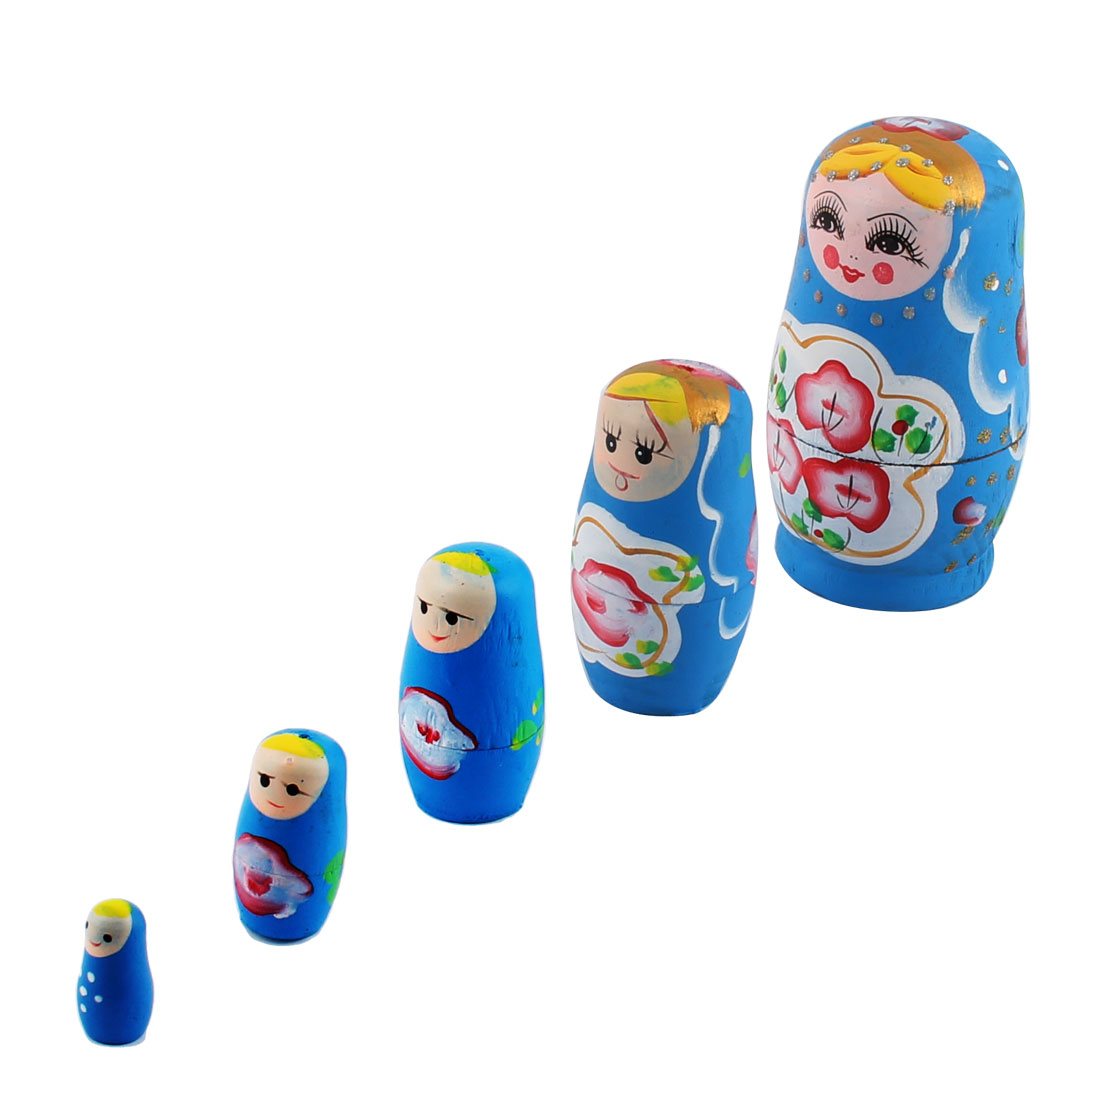 Wooden Hand Painted Russian Nesting Dolls Matryoshka Gift Blue Set 5 in 1